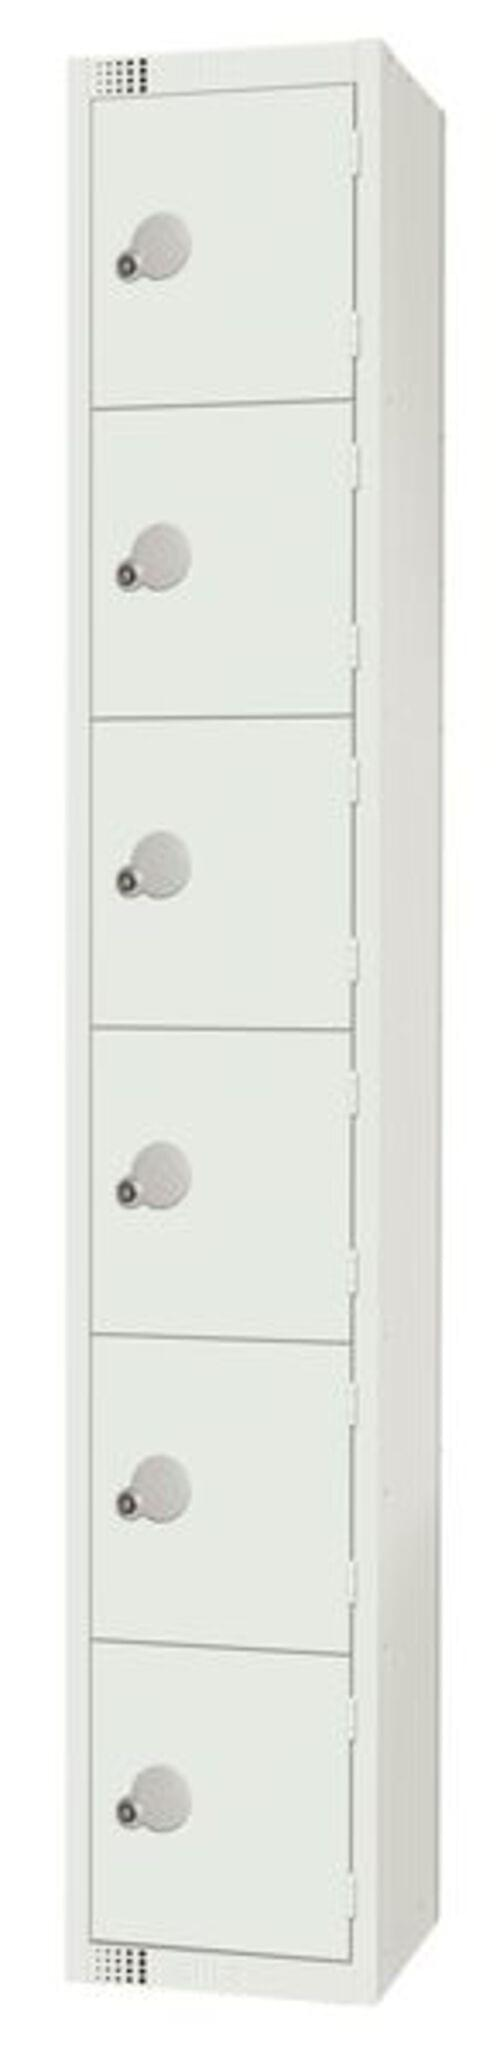 6 Compartment Locker - White - 1800 x 300 x 300mm